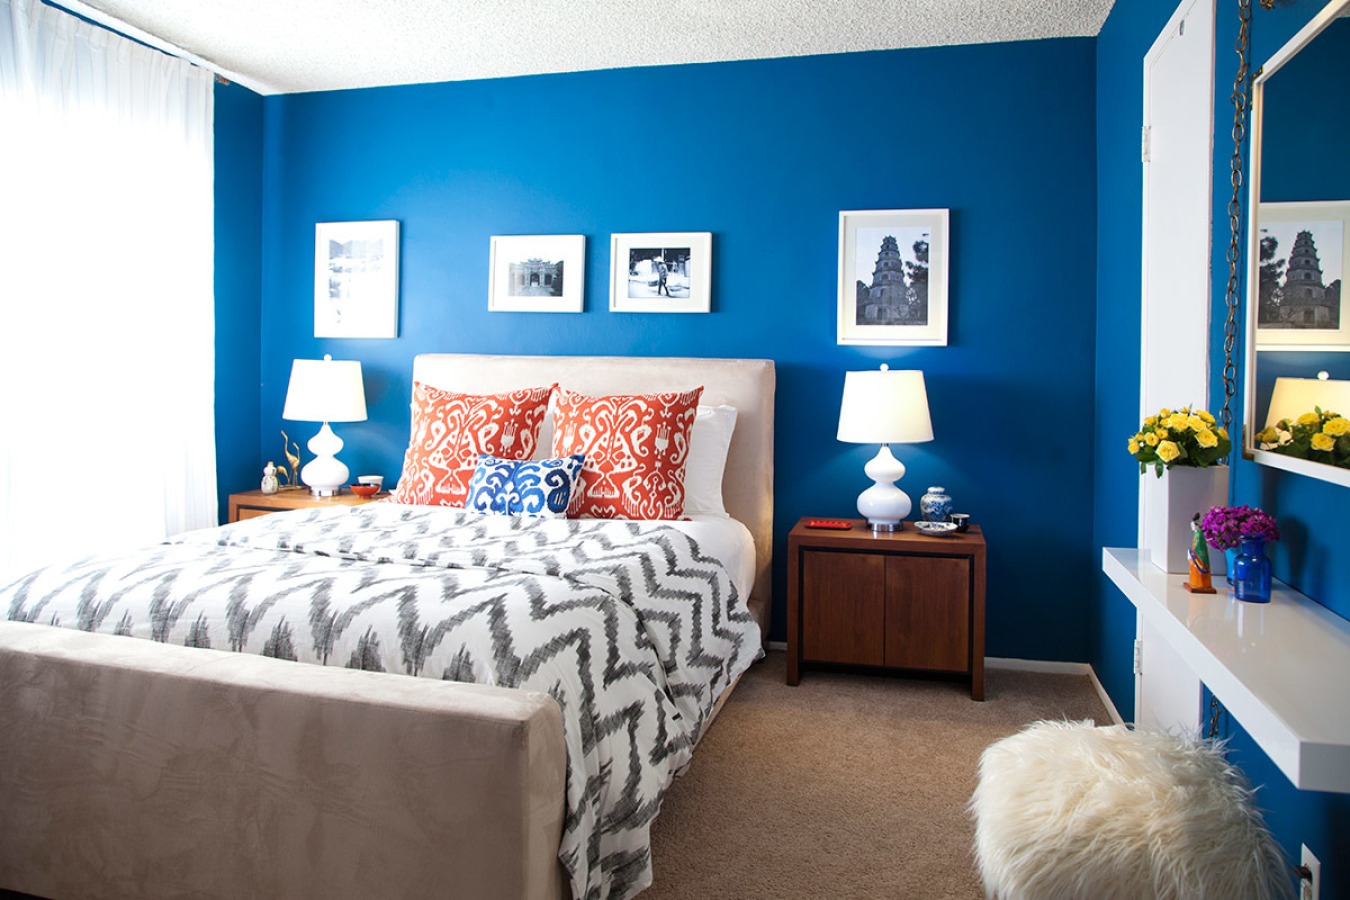 Moody Interior Breathtaking Bedrooms In Shades Of Blue - Blue-bedroom-interior